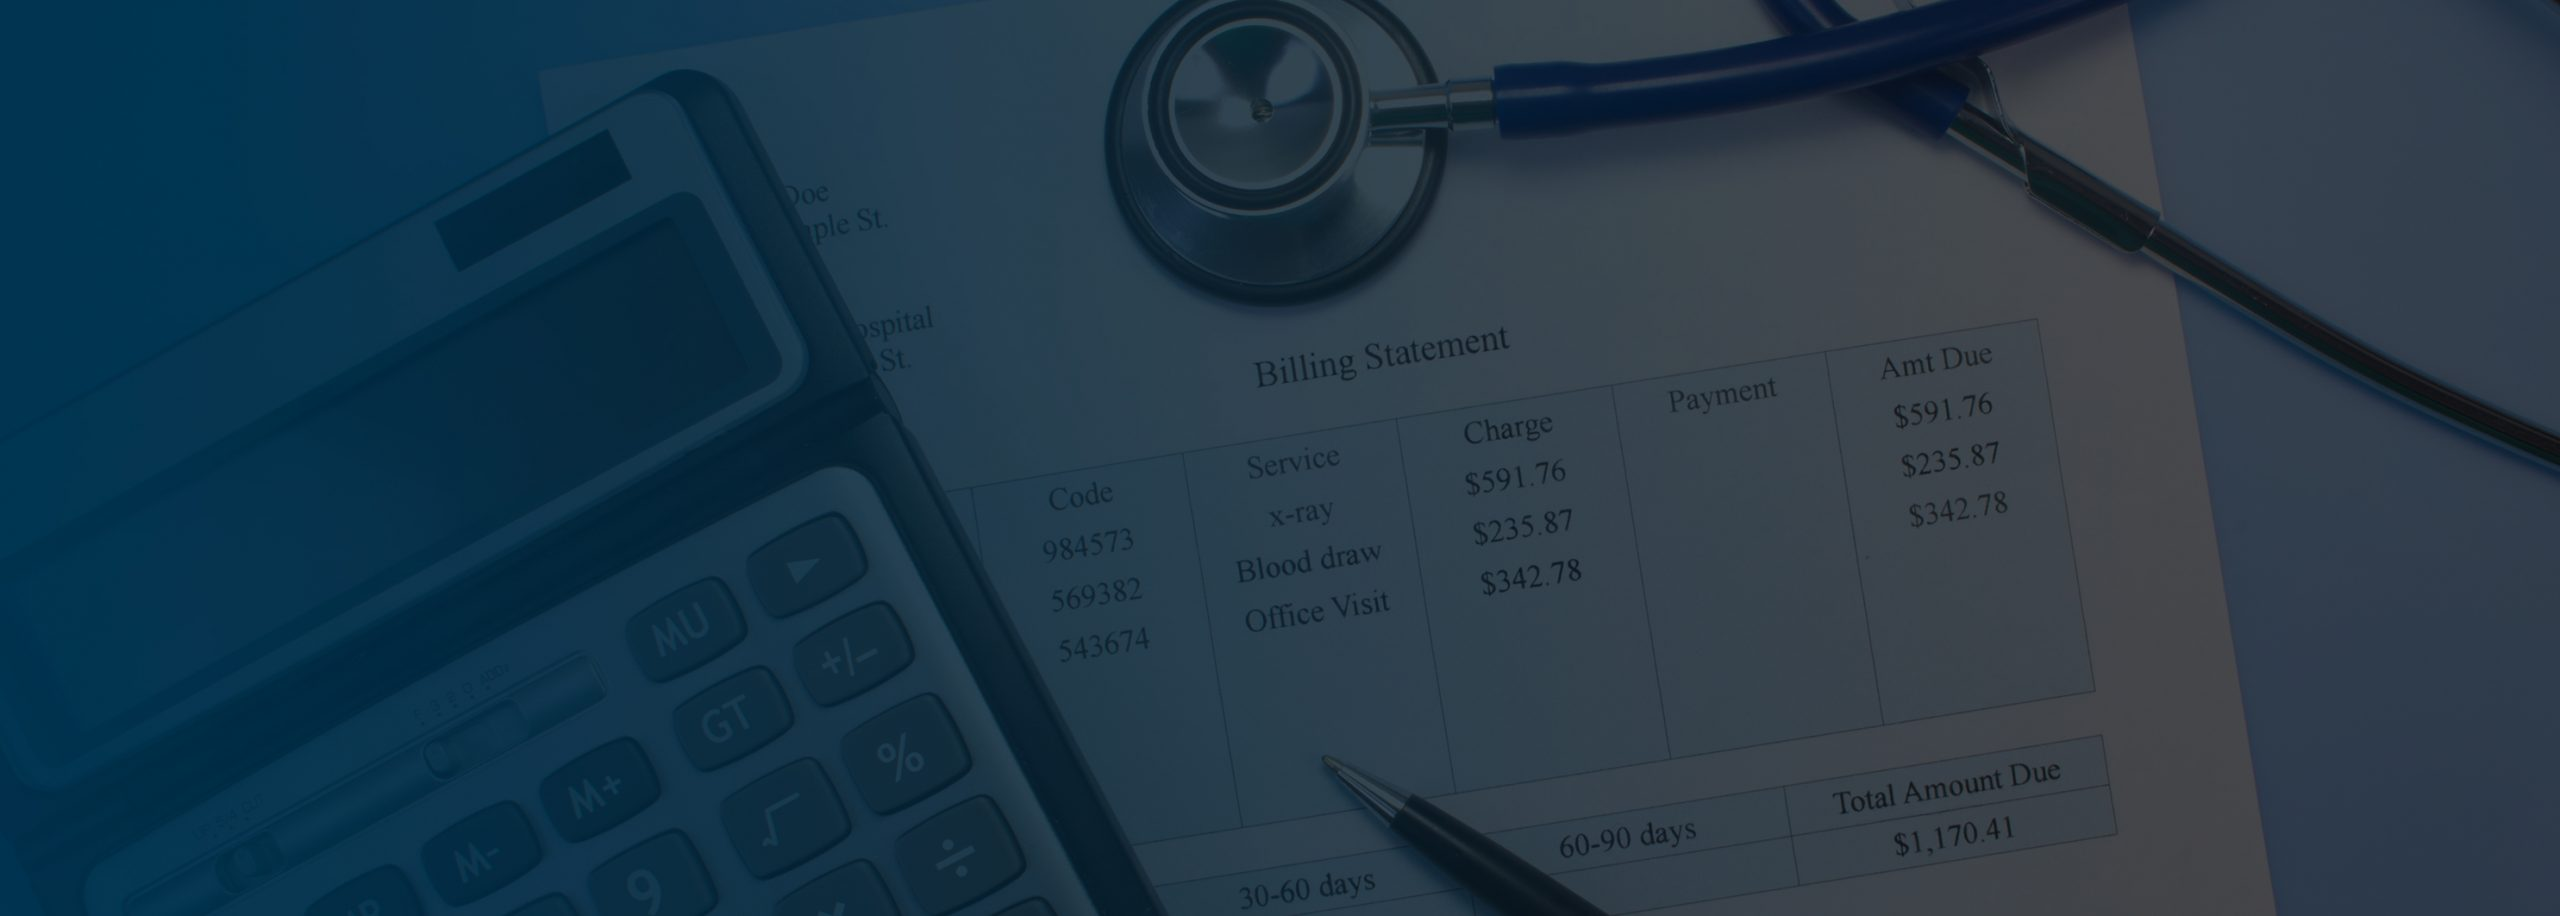 A calculator, stethoscope and a pen is placed on a billing statement paper